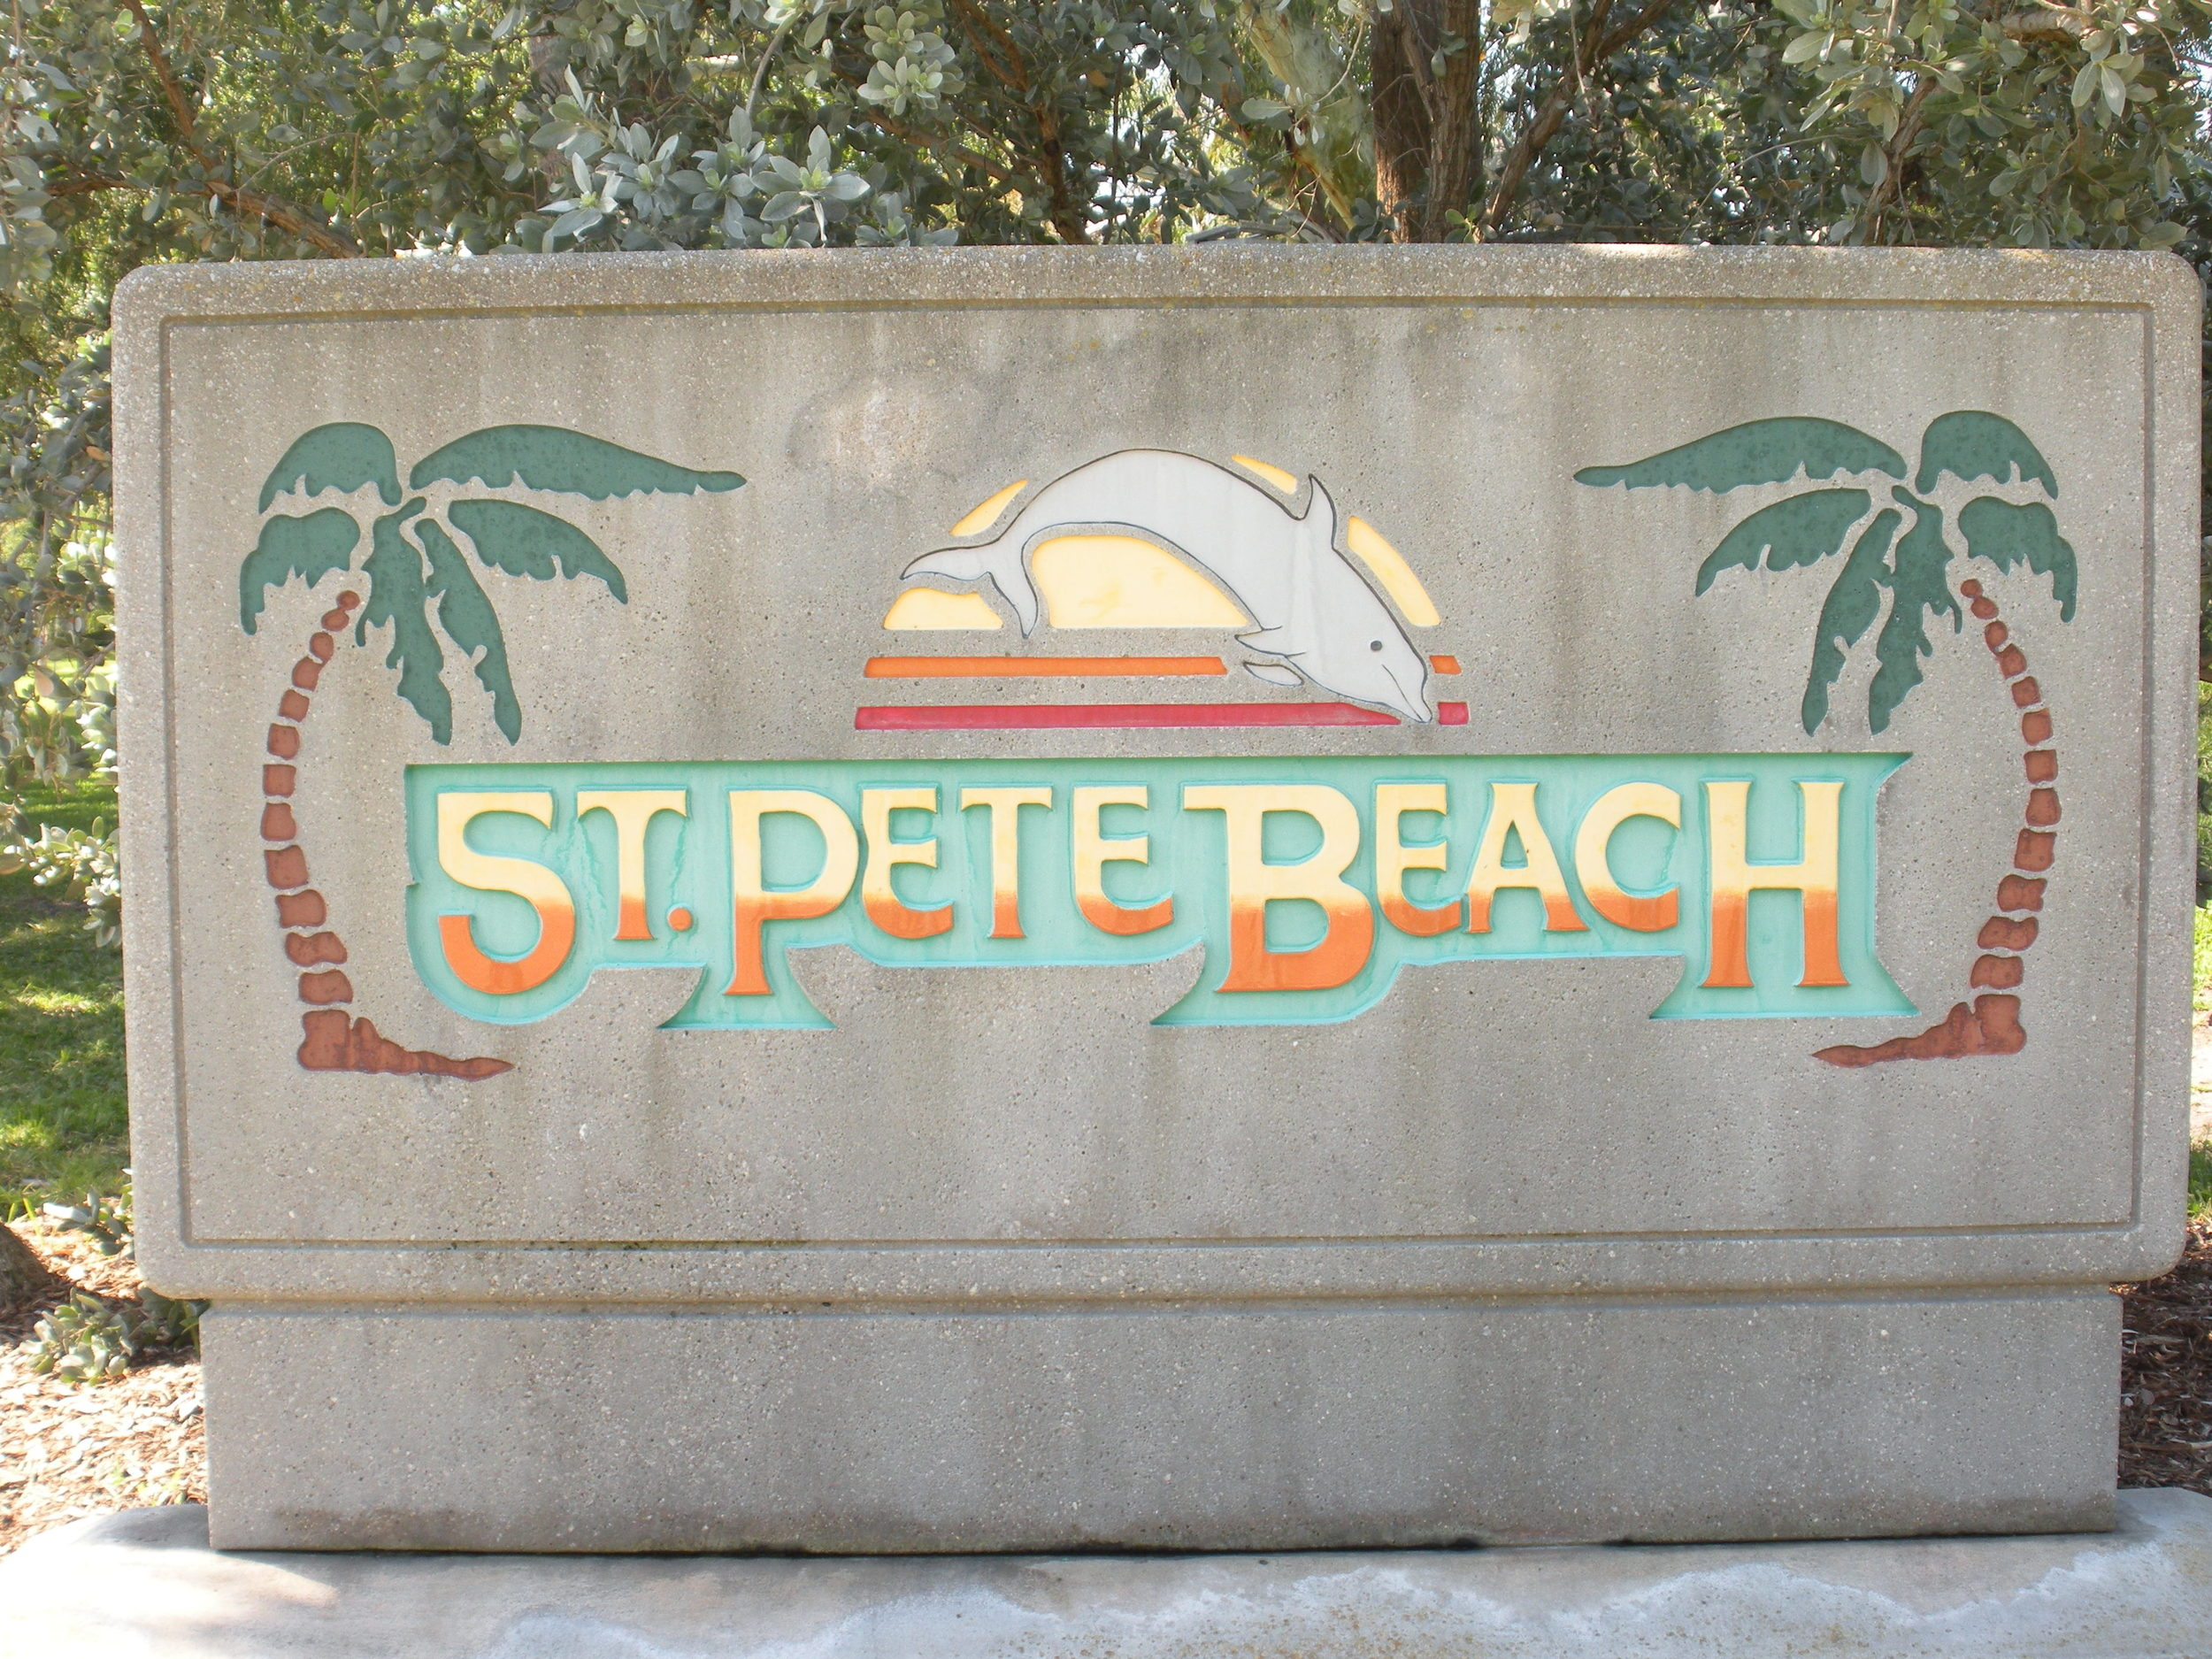 St Pete Beach Welcomes You...